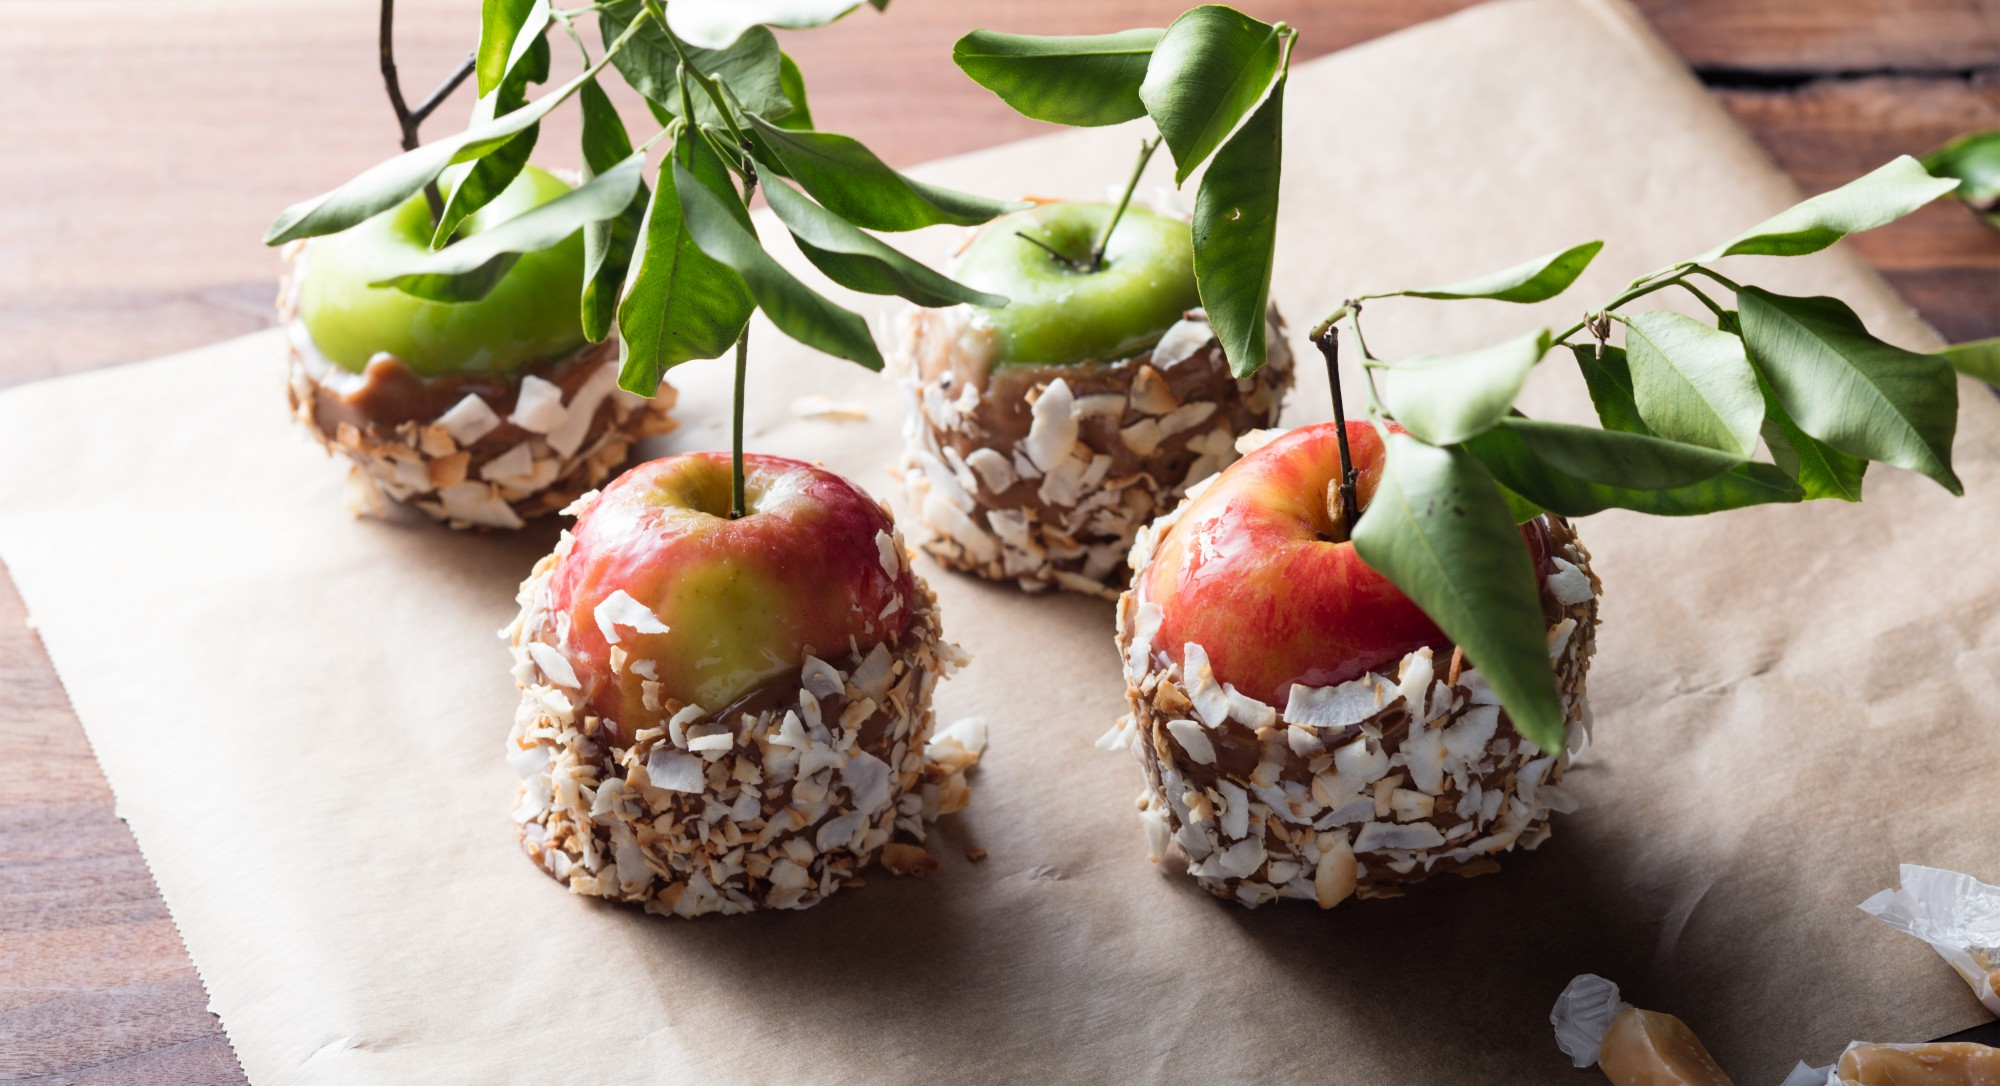 No Trick, All Treat: Double Coconut Caramel Apples